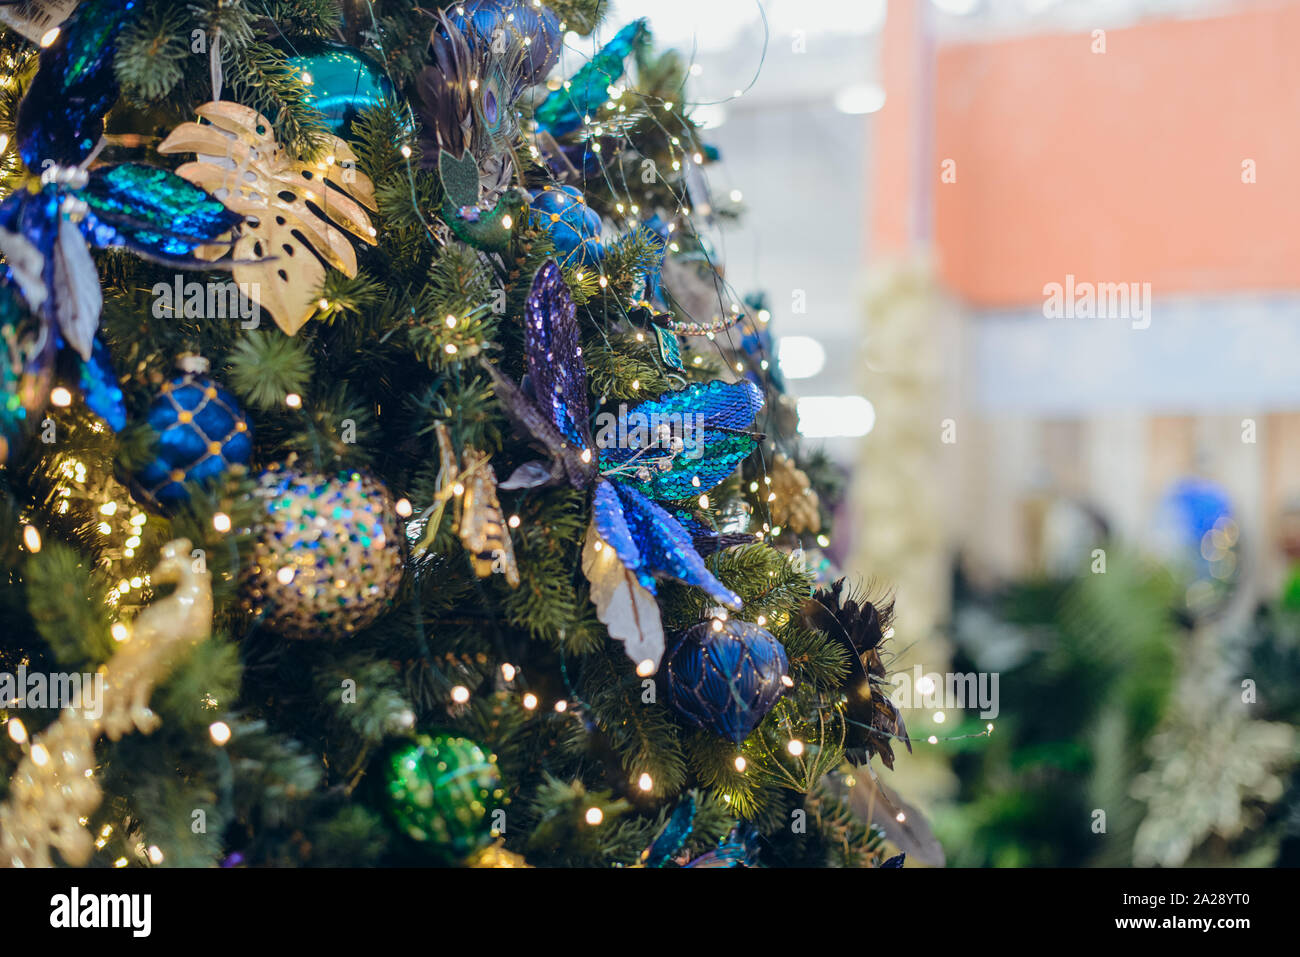 Close Up Creative Modern Christmas Tree Decor Golden Tropical Monstera Leaves Navy Blue Shiny Flowers And Balls With Garland Lights Exotic New Year Stock Photo Alamy